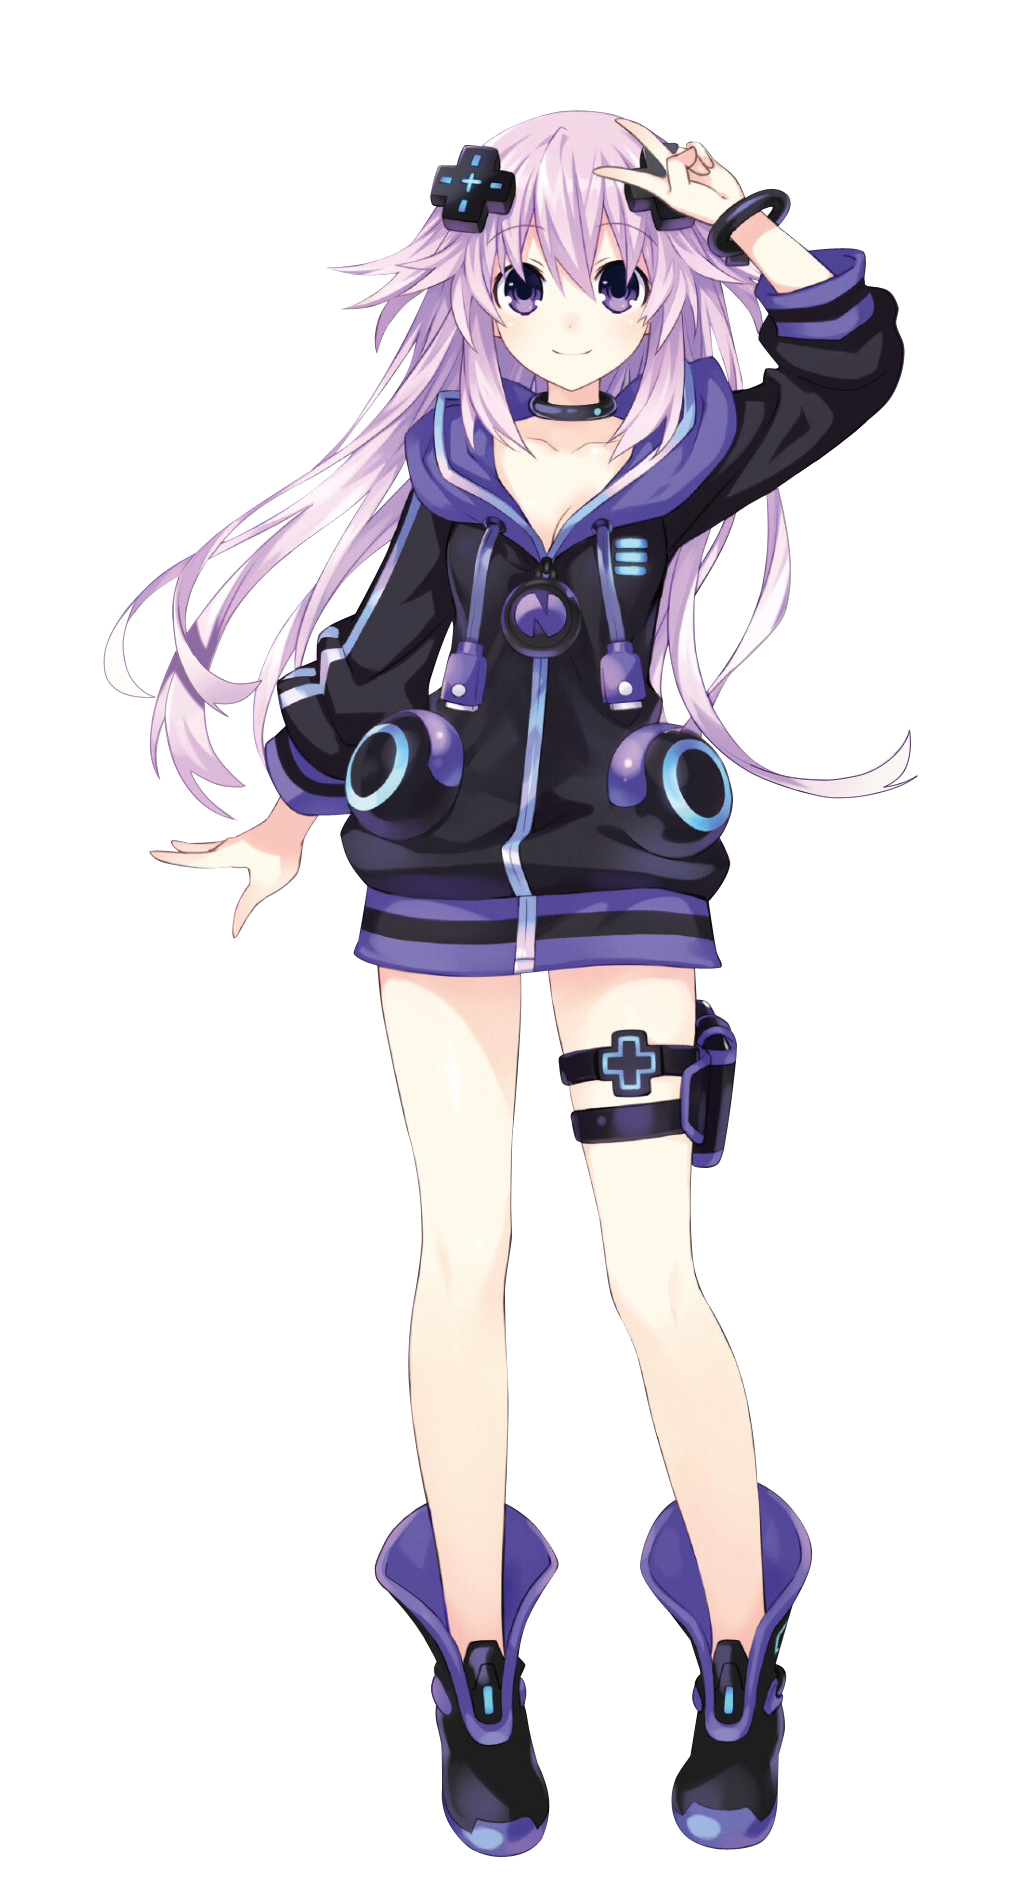 Neptunia neptune png. Image megadimension victory ii